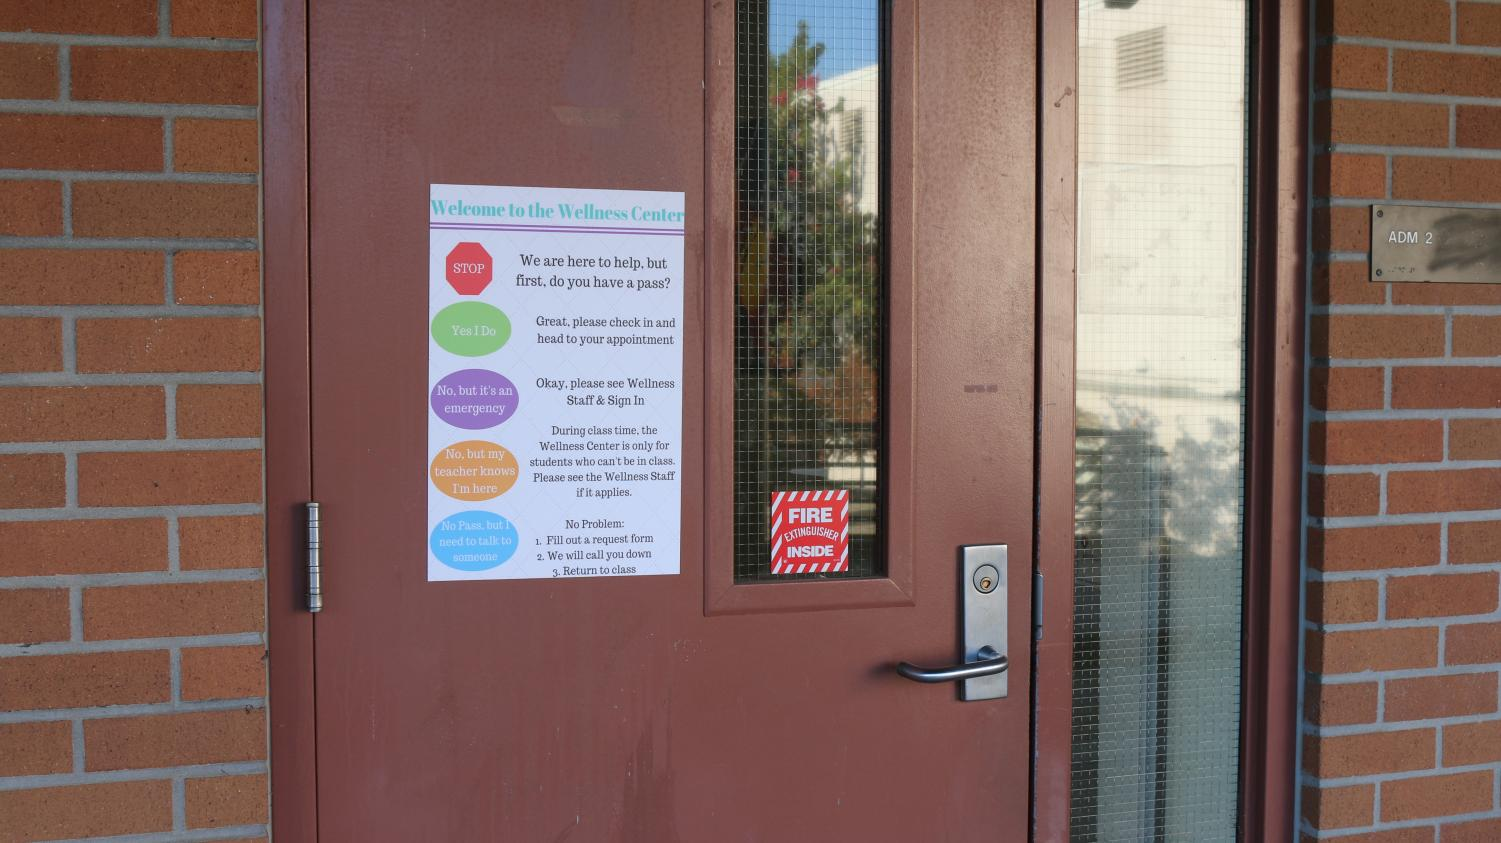 TOWNSEND: Administration overlooks Suicide Awareness Month